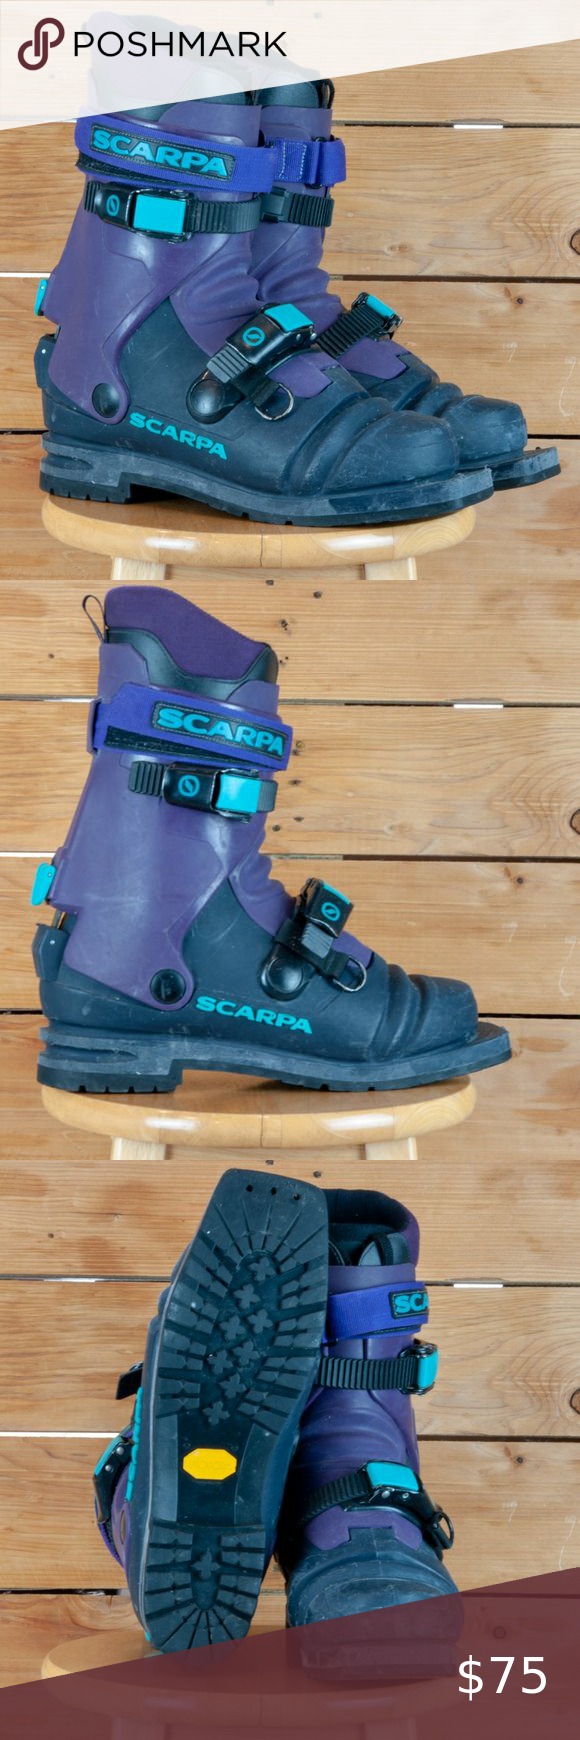 Scarpa Telemark Boots M8 5 Mondo 26 5 Older Model T1 Or T2 Telemark Cross Country Ski Boots 75mm 3 Pin N In 2020 Cross Country Ski Boots Boots Ski Boot Sizing